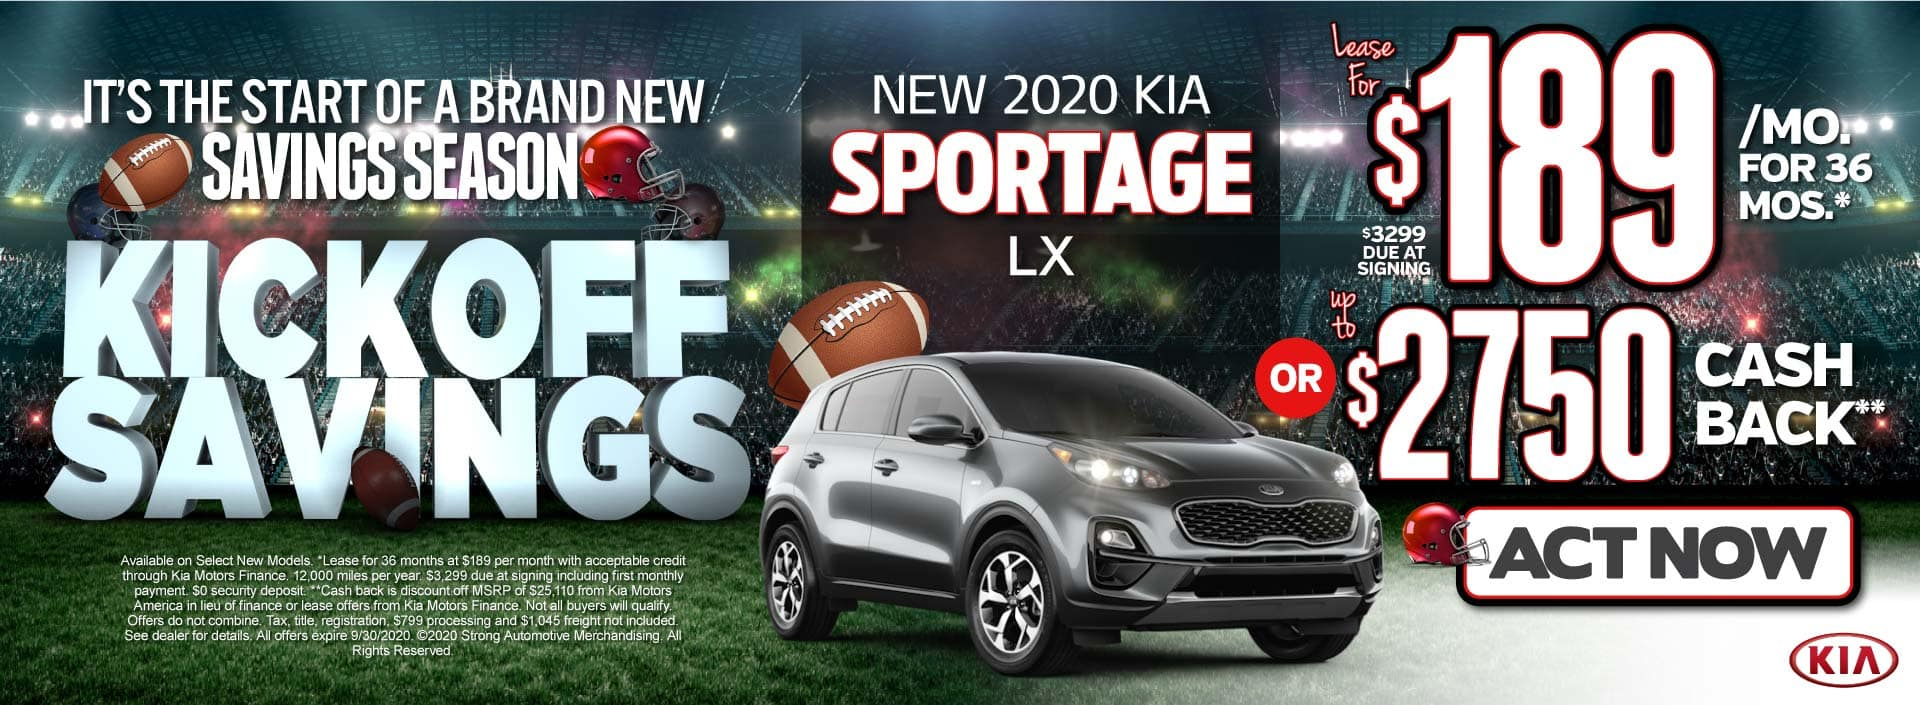 New 2020 Kia Sportage only $189 or $2750 Cash back- ACT NOW